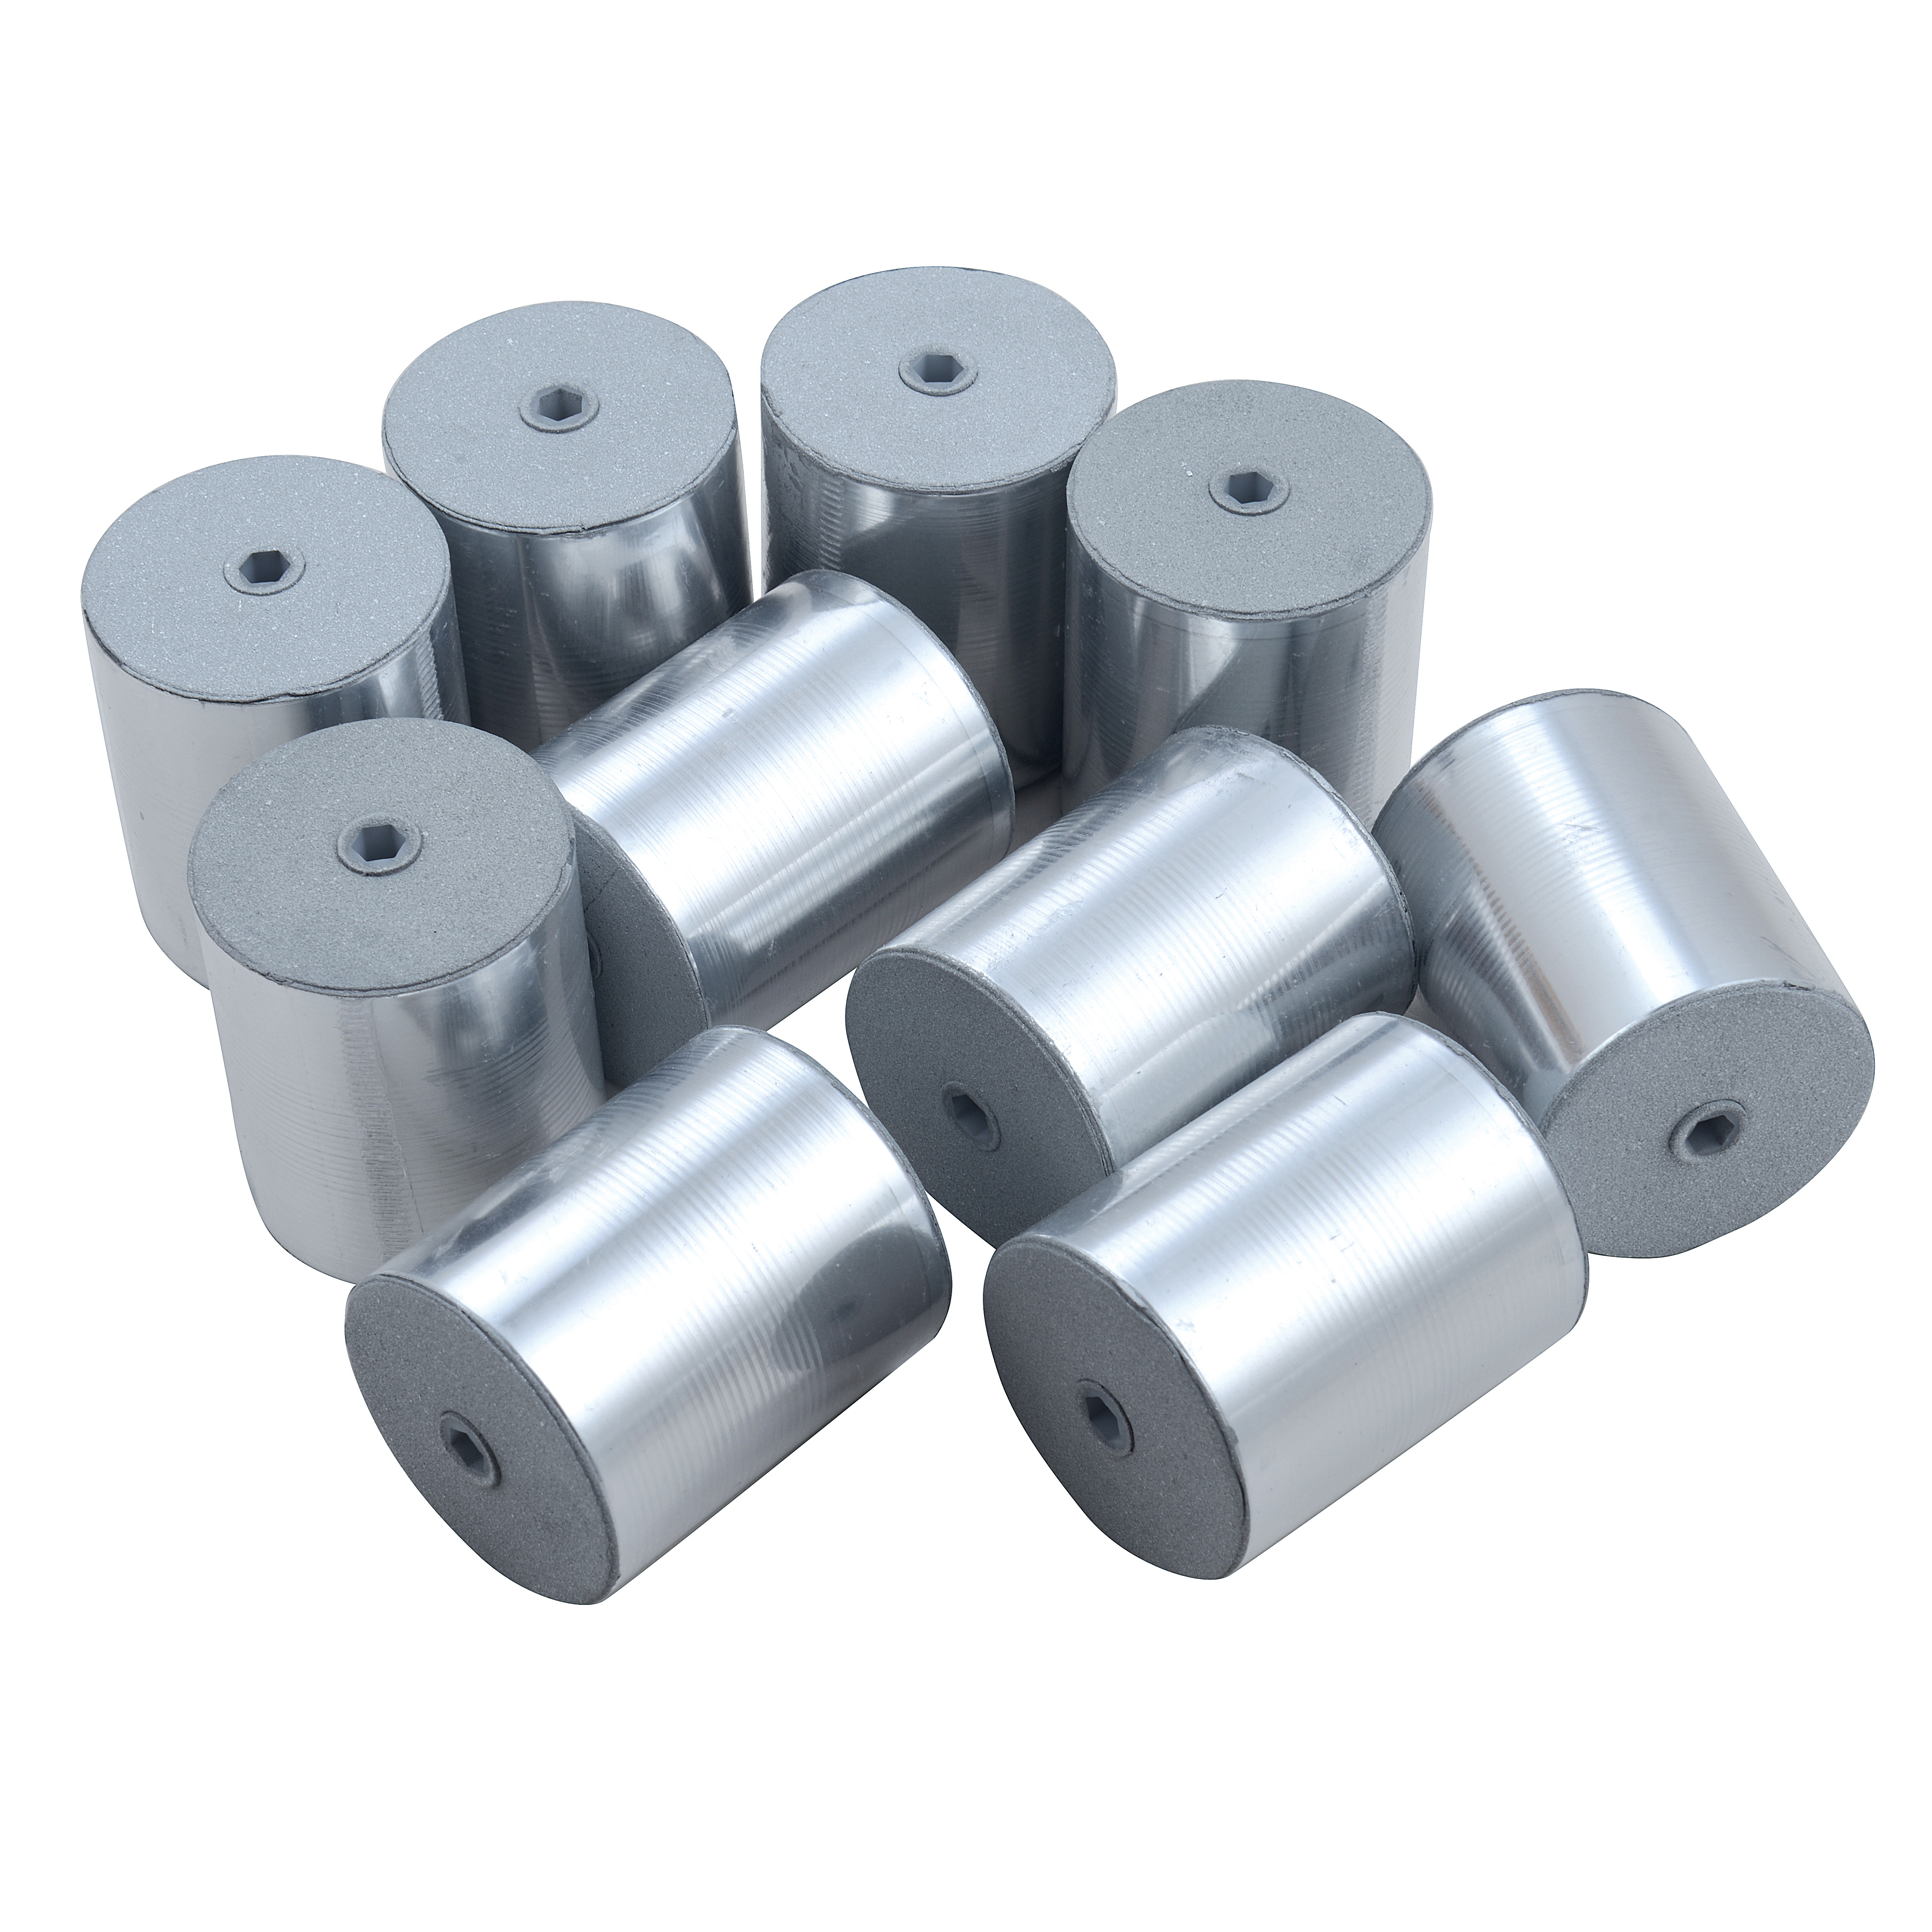 High Quality 5 8um Film Capacitor Core For Capacitor Buy Capacitor Core 5 8um Film Capacitor Core Capacitor Element Product On Alibaba Com